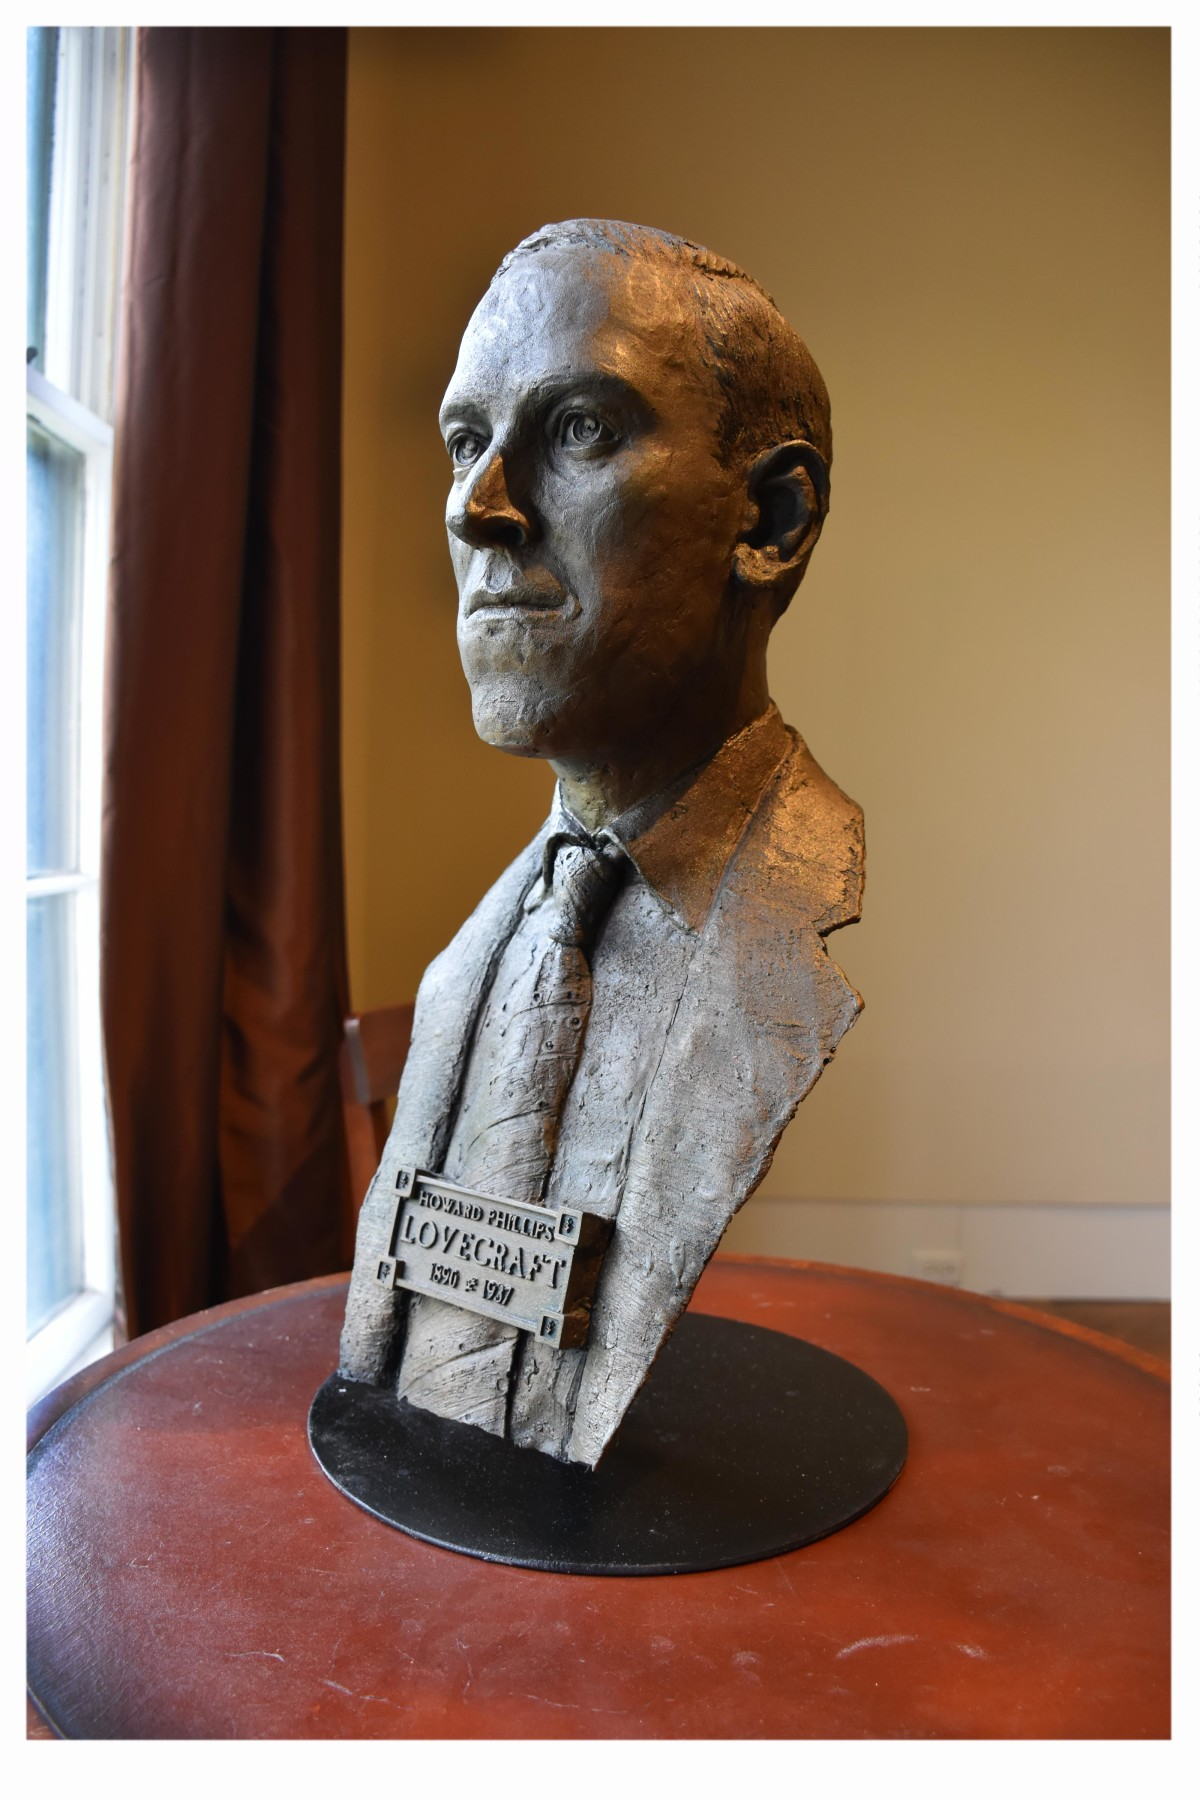 HP Lovecraft Bust 2